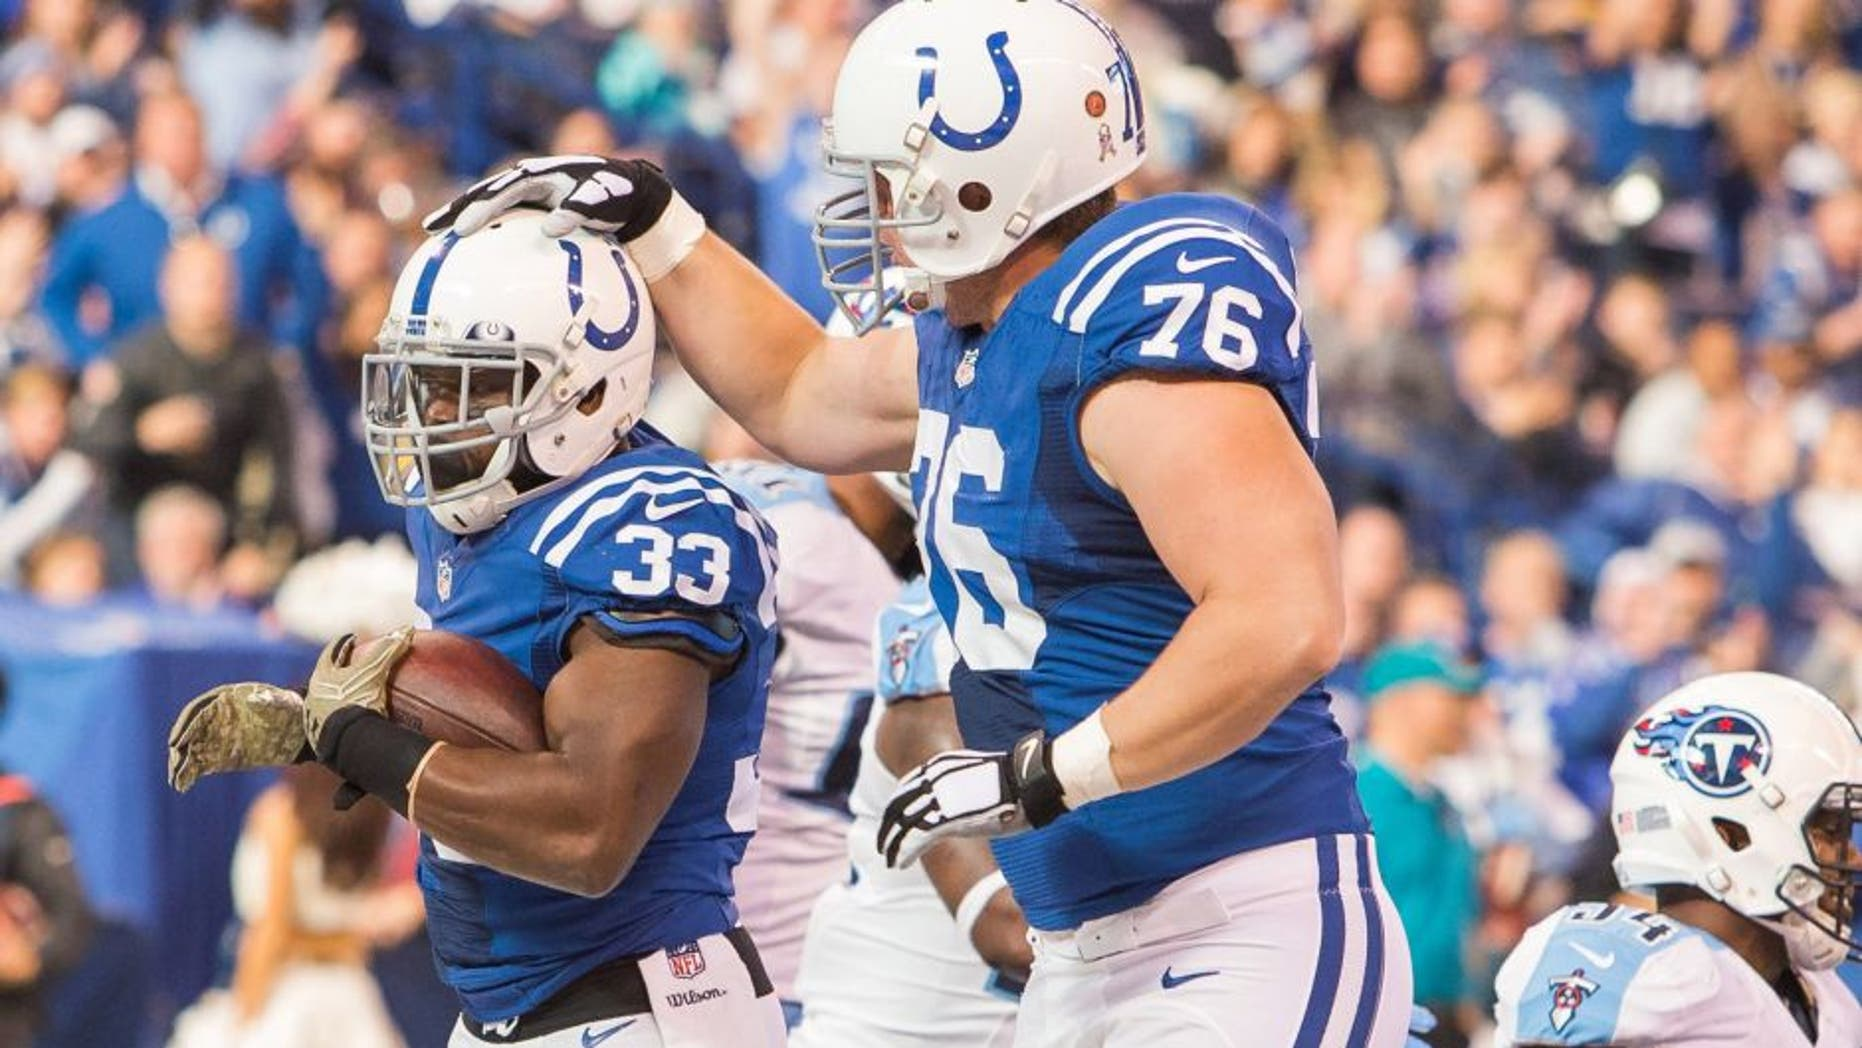 Nov 20, 2016; Indianapolis, IN, USA; Indianapolis Colts running back Robert Turbin (33) celebrates his touchdown with offensive tackle Joe Reitz (76) in the first quarter the game against the Tennessee Titans at Lucas Oil Stadium. Mandatory Credit: Trevor Ruszkowski-USA TODAY Sports